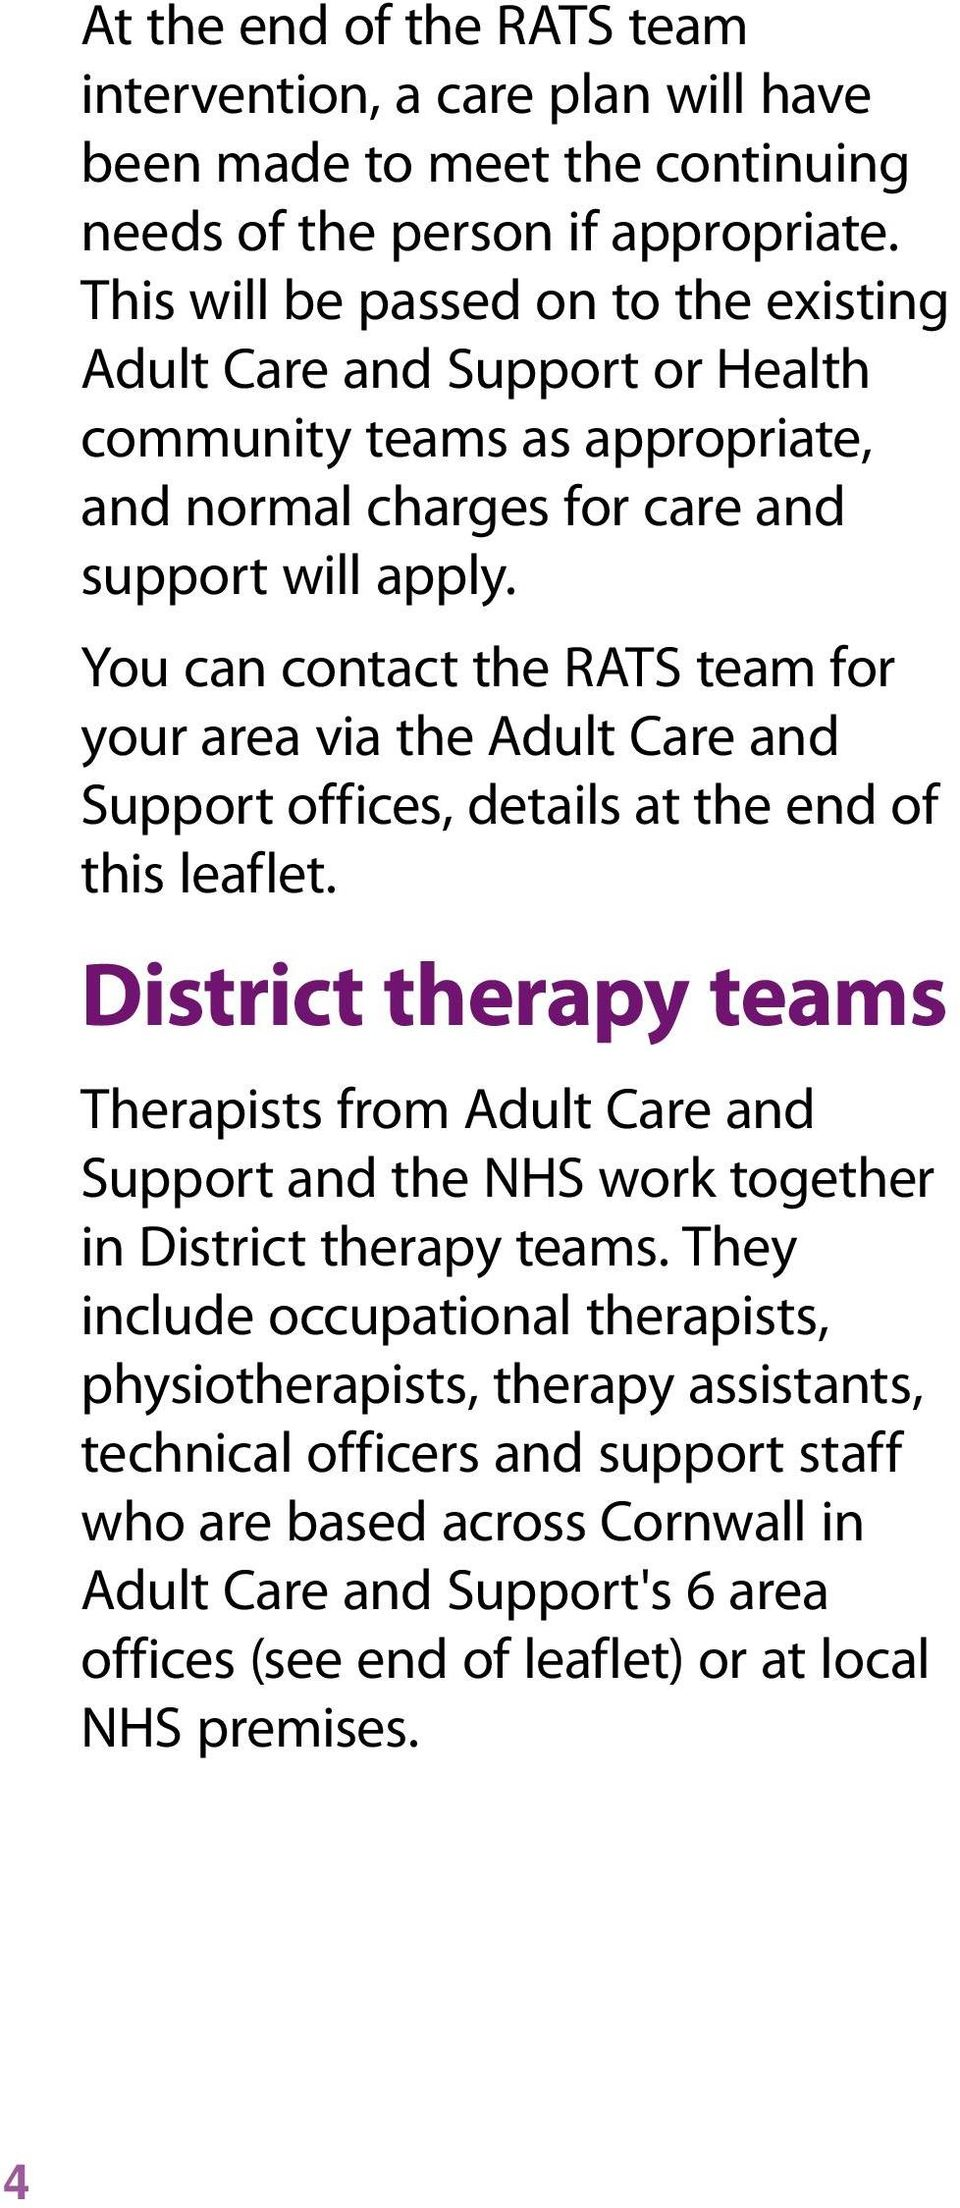 You can contact the RATS team for your area via the Adult Care and Support offices, details at the end of this leaflet.